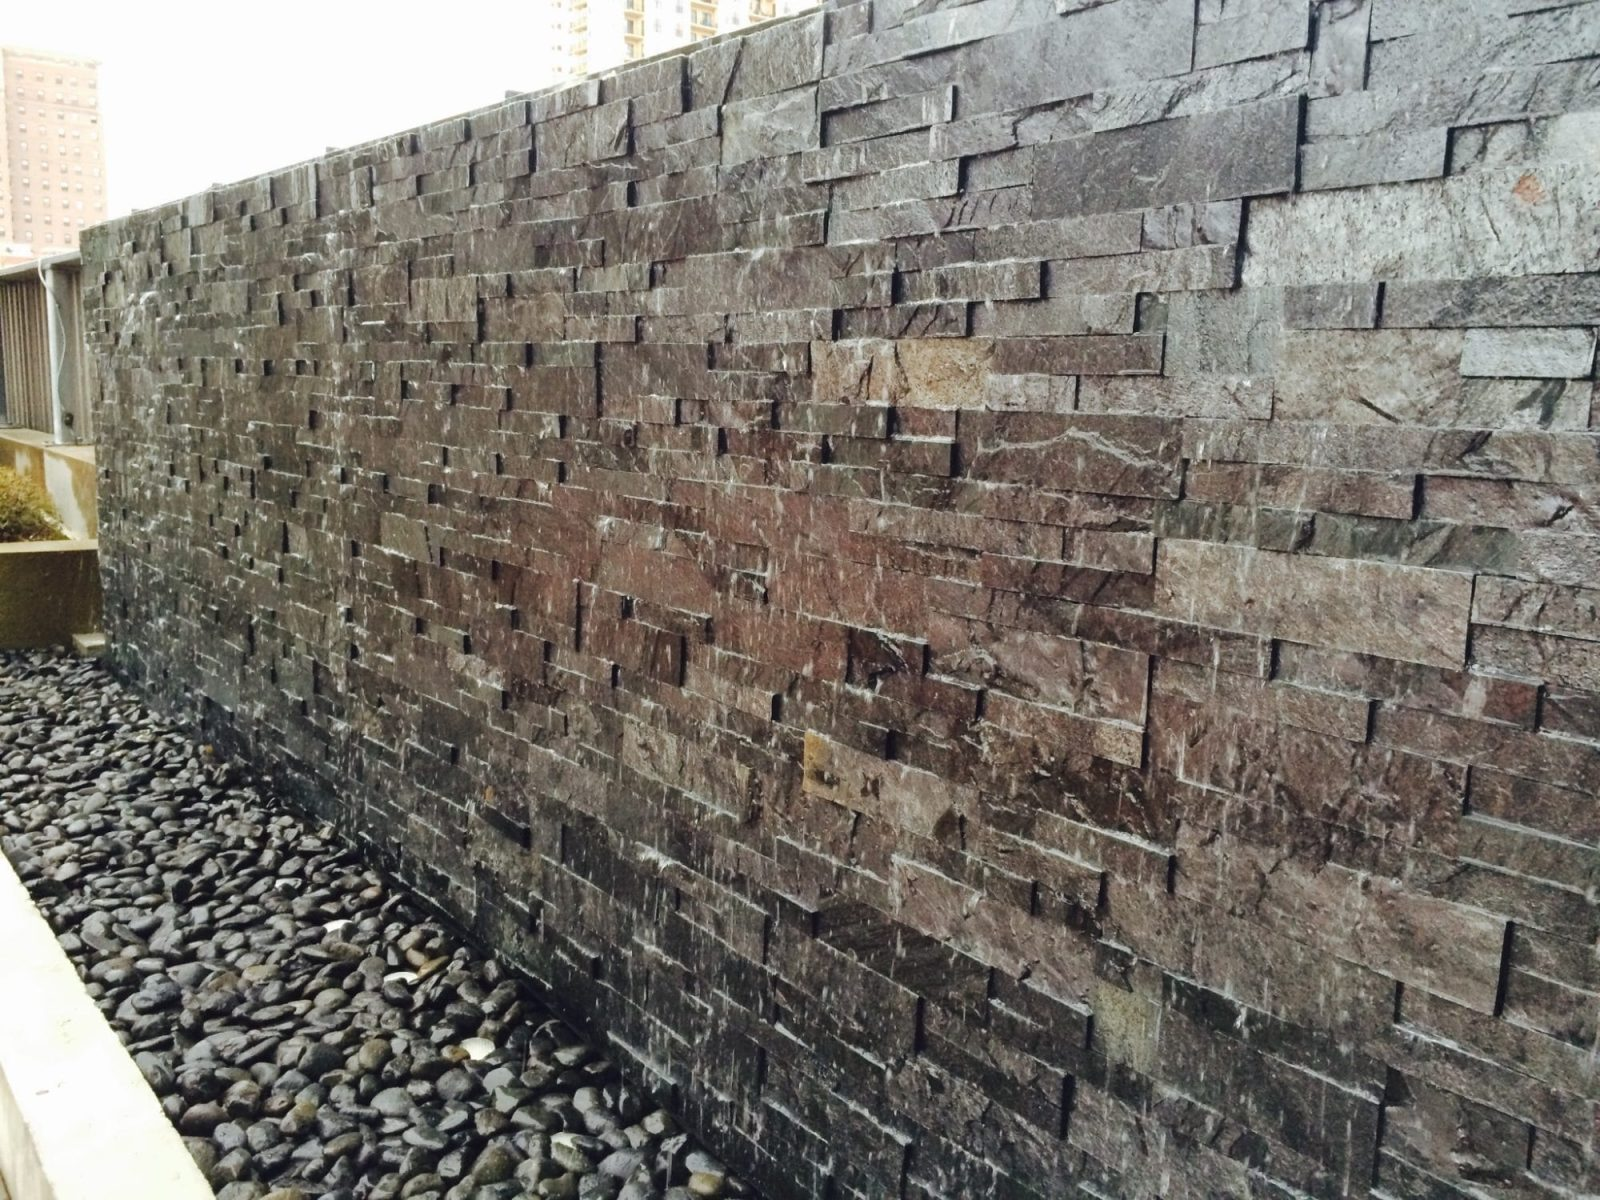 Tile Water Wall Waterfall Outdoor Rooftop Garden at 1401 S. State Chicago